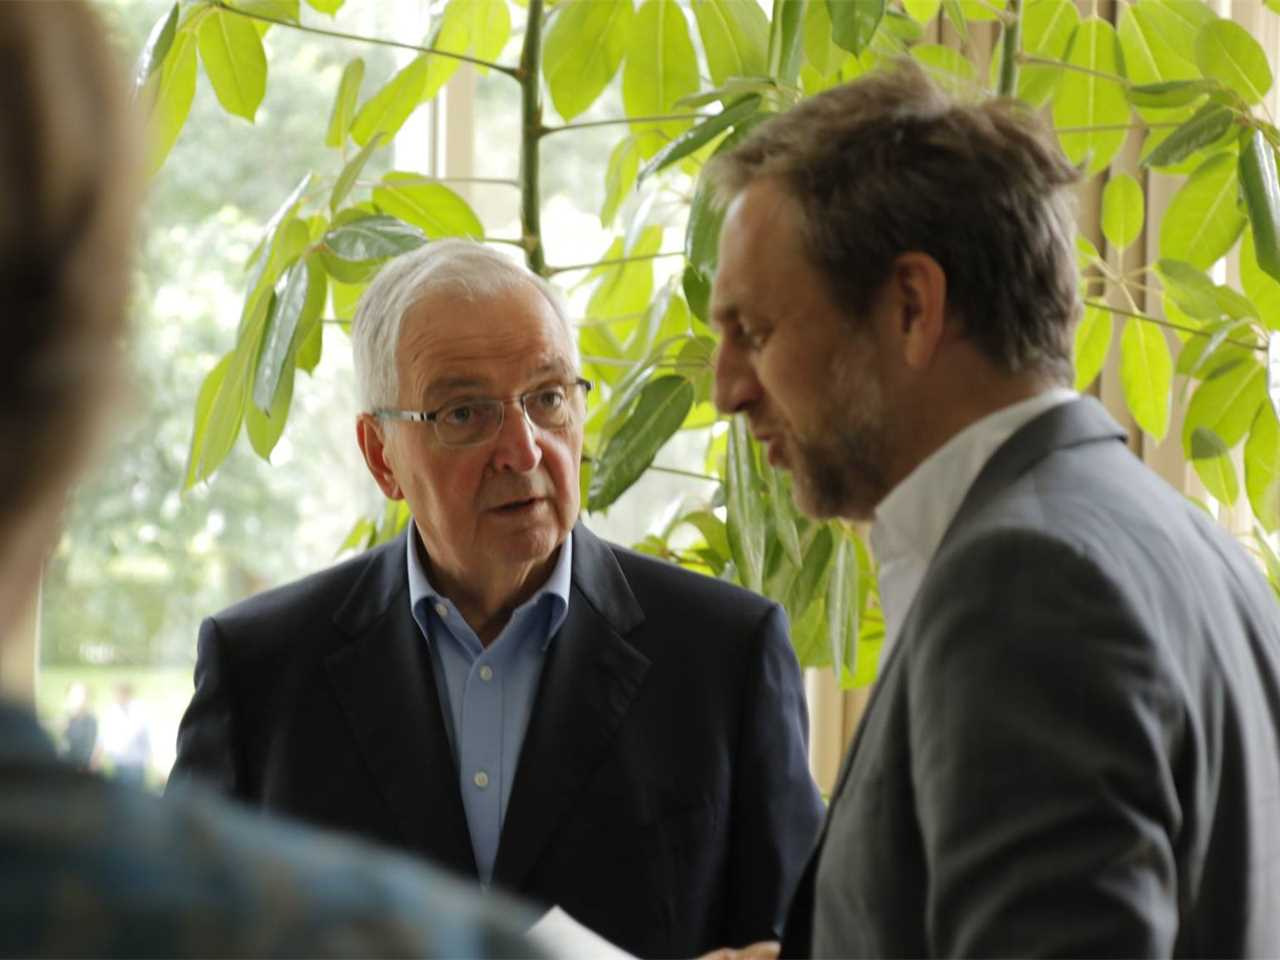 Klaus Töpfer meets with Jan Edler, July 2015 – Flussbad: Urban renewal and swimming-pool …